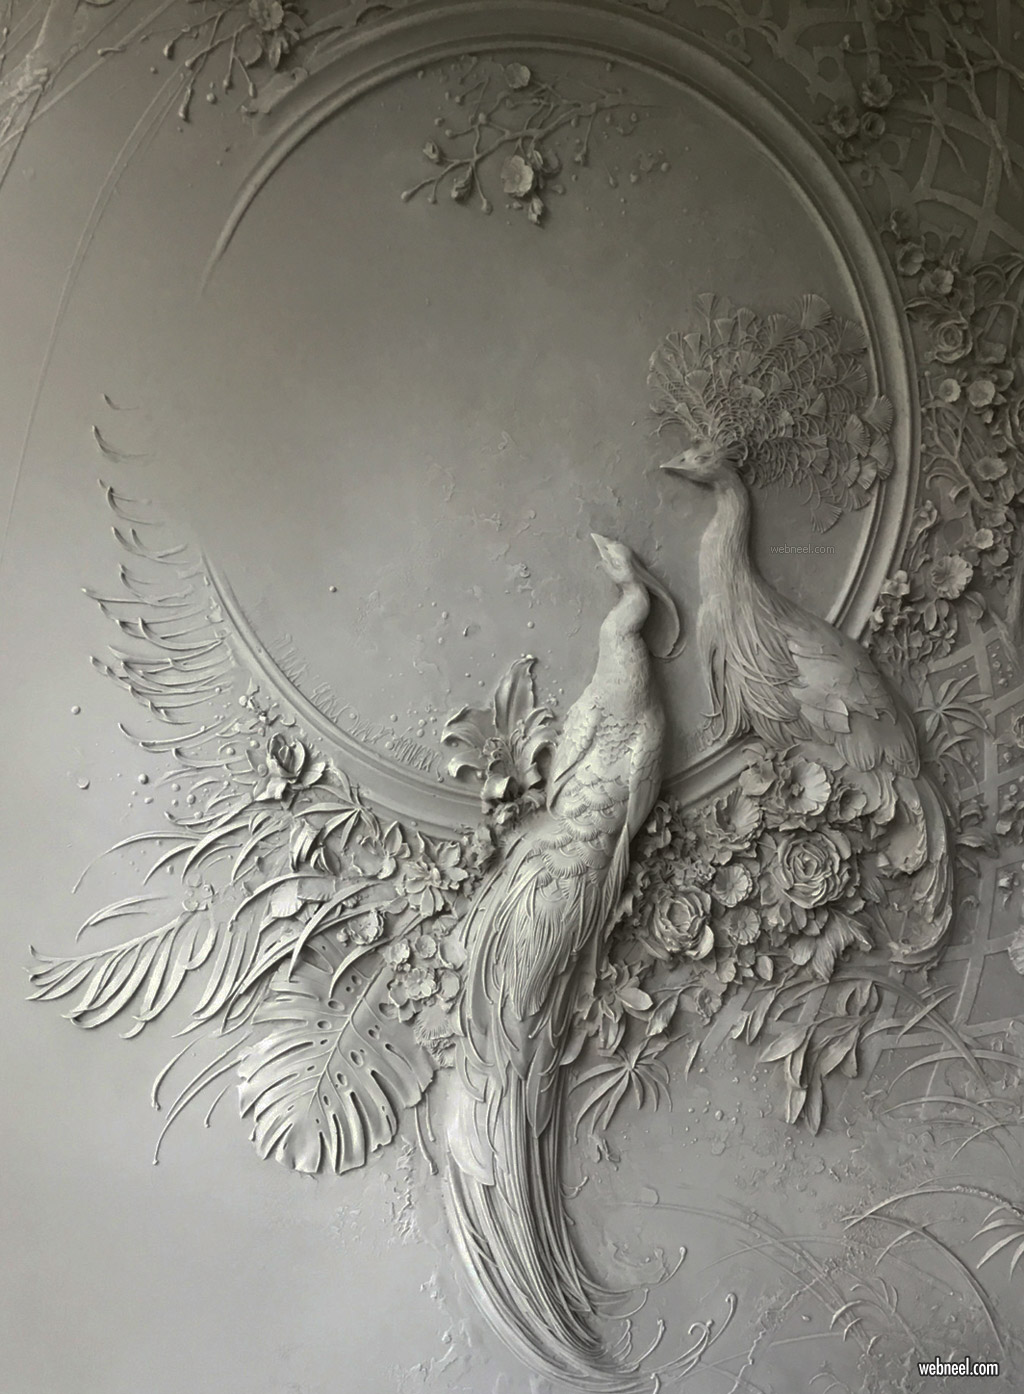 bas relief low sculpture interior peacock by goga tandashvili